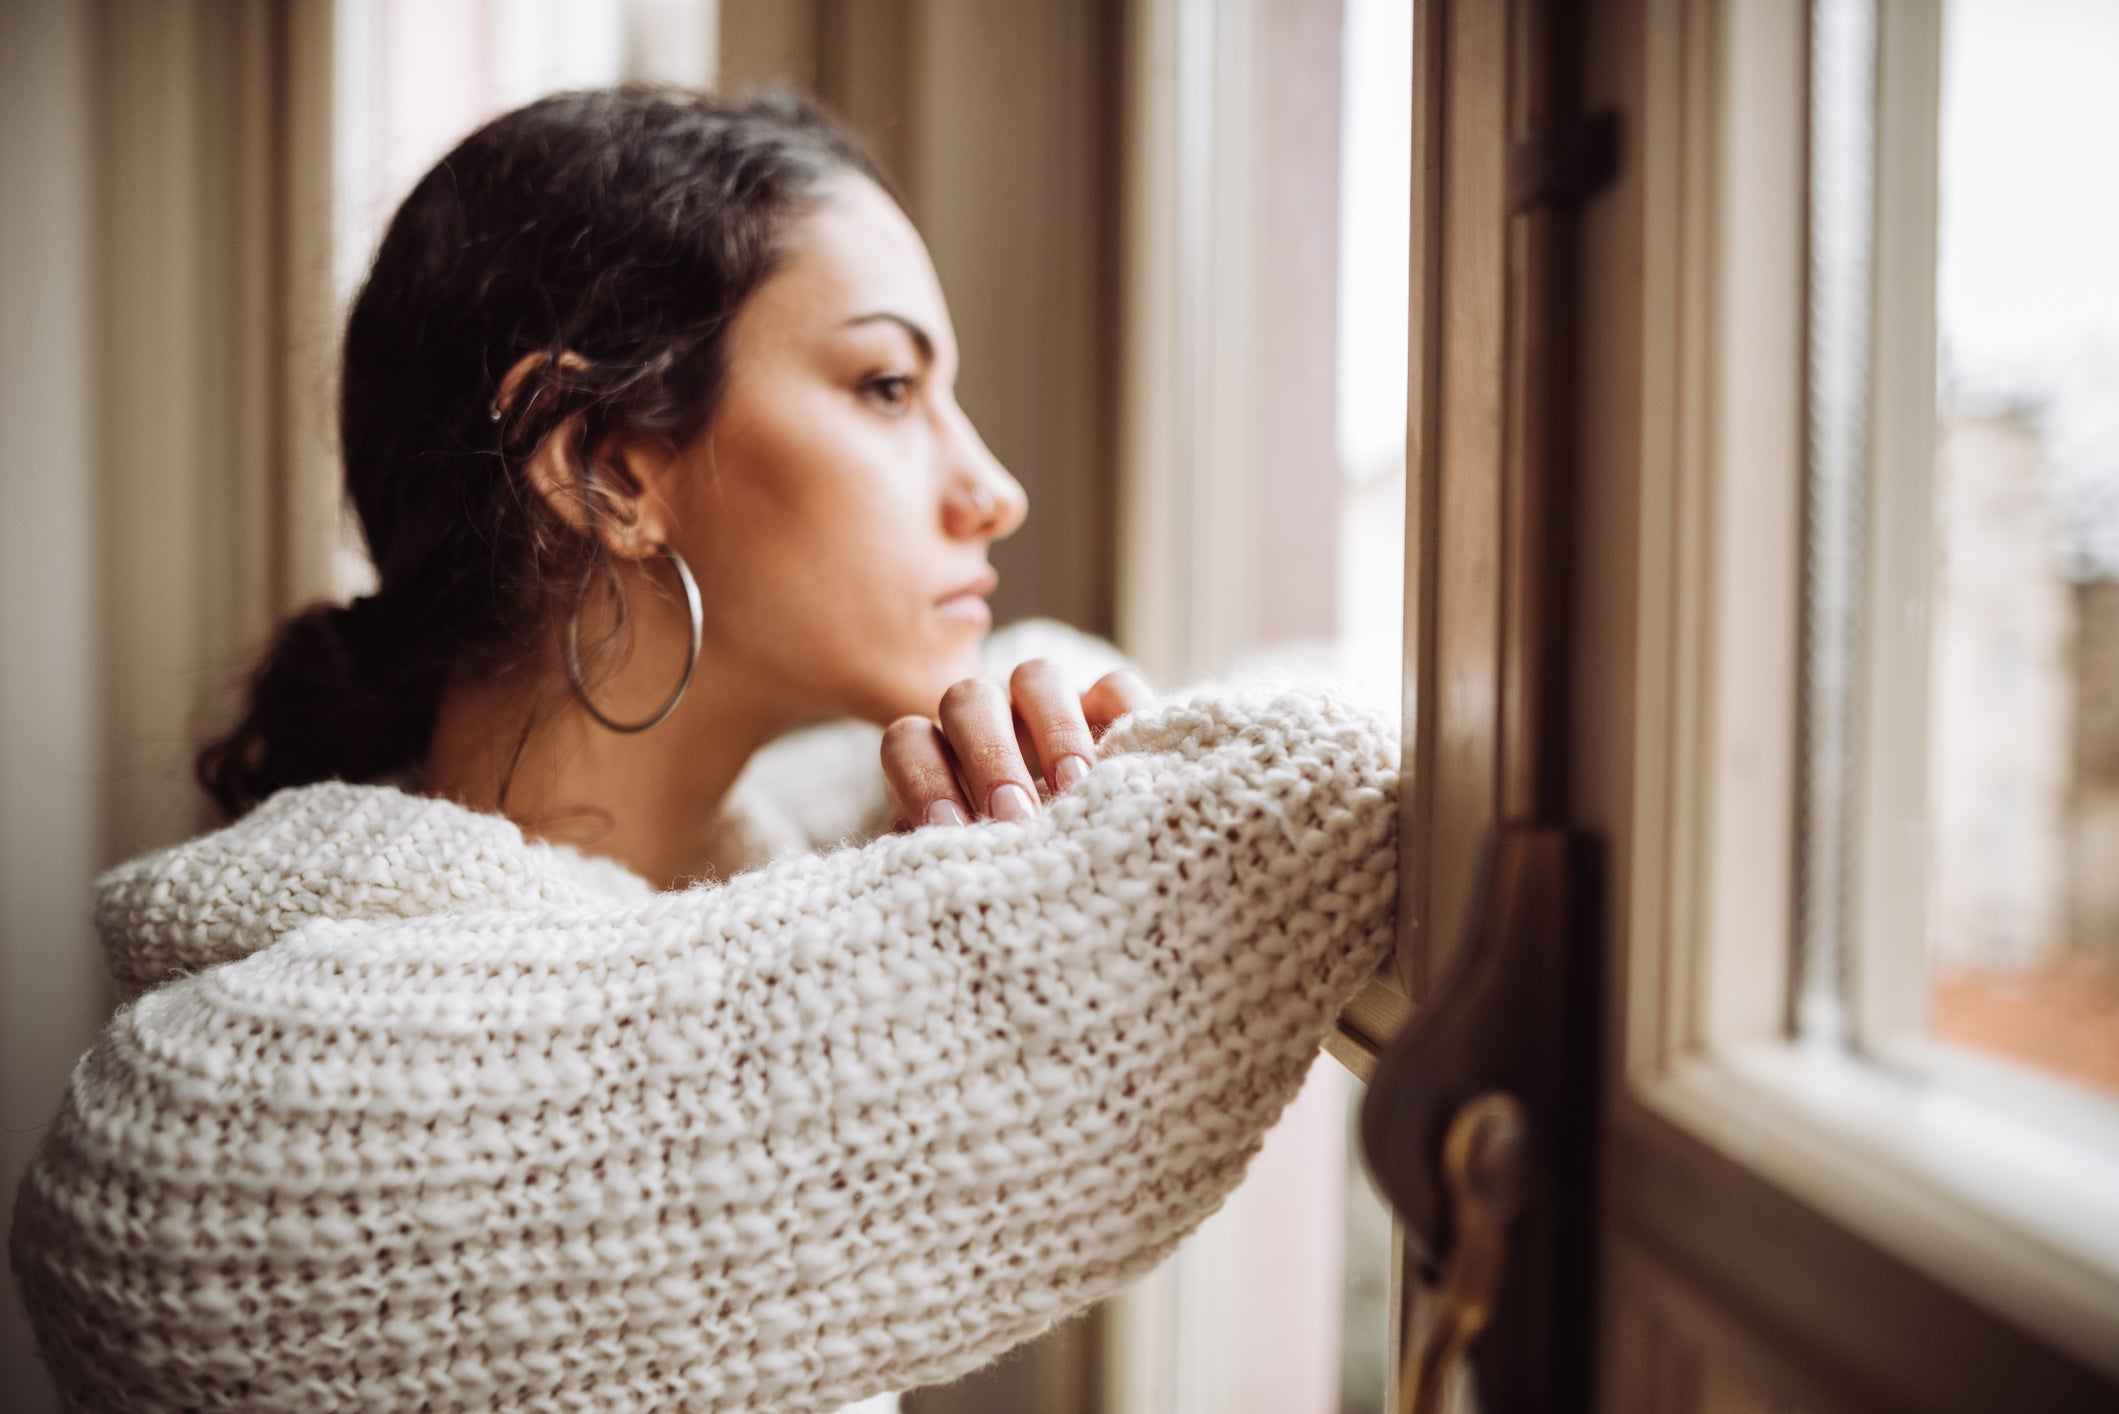 A stressed young woman looking out the window.